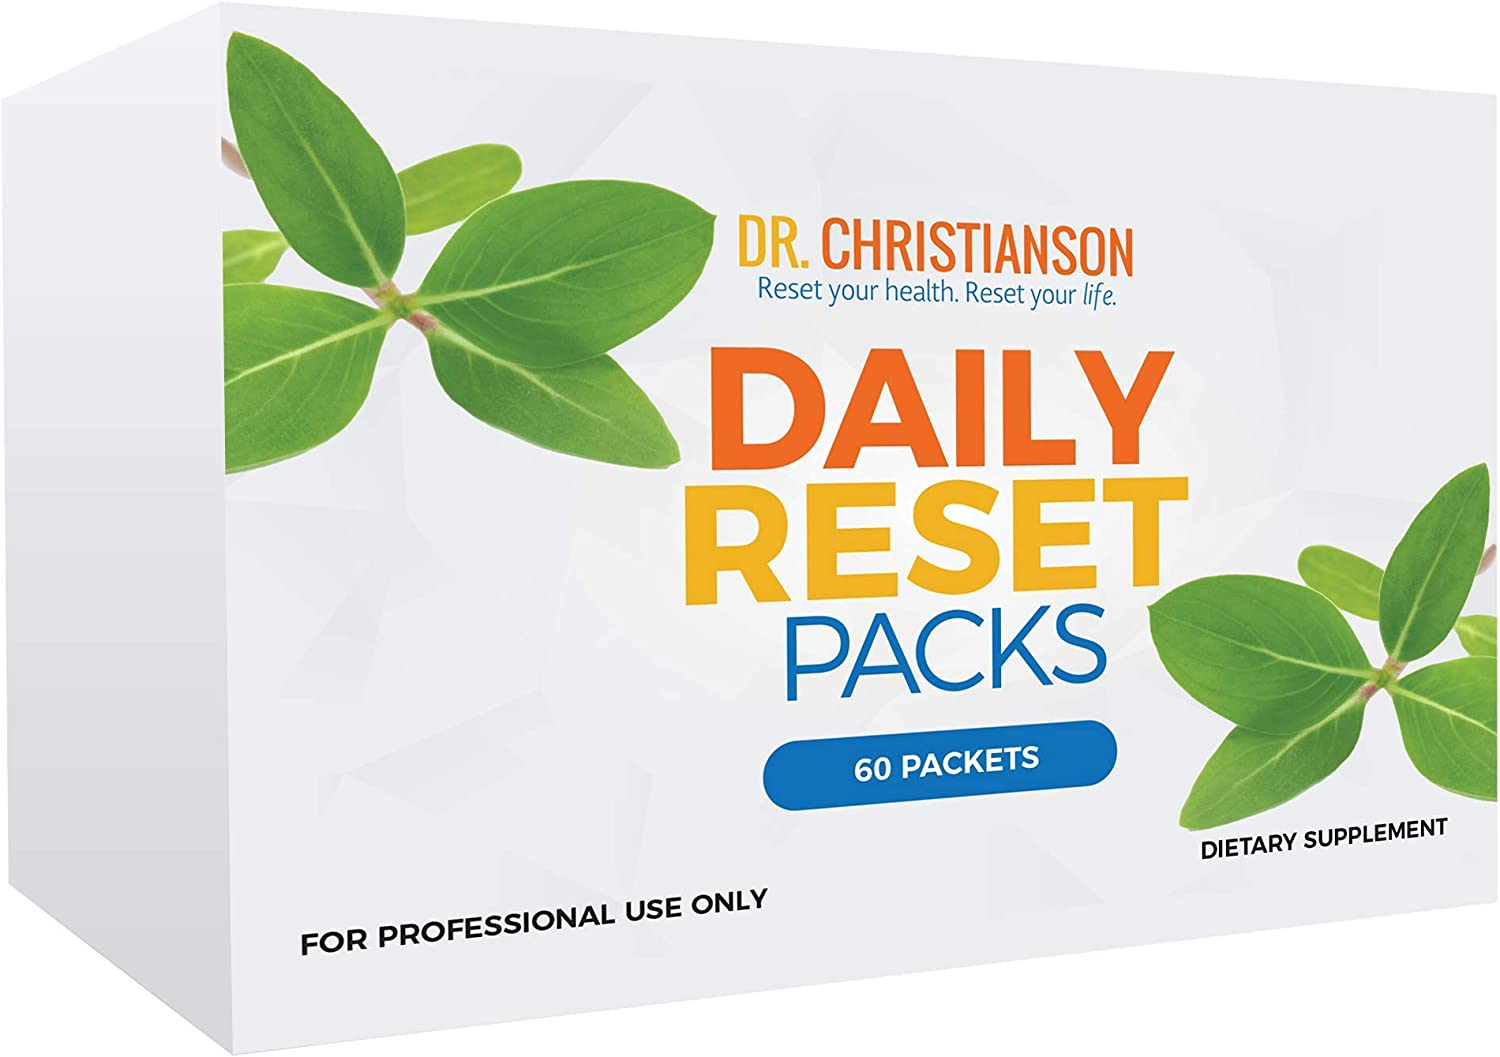 Dr. Christianson s Daily Reset Pack – Multi Vitamin, Fish Oil, Calcium, Vitamin D – 60 Individual Daily Packs